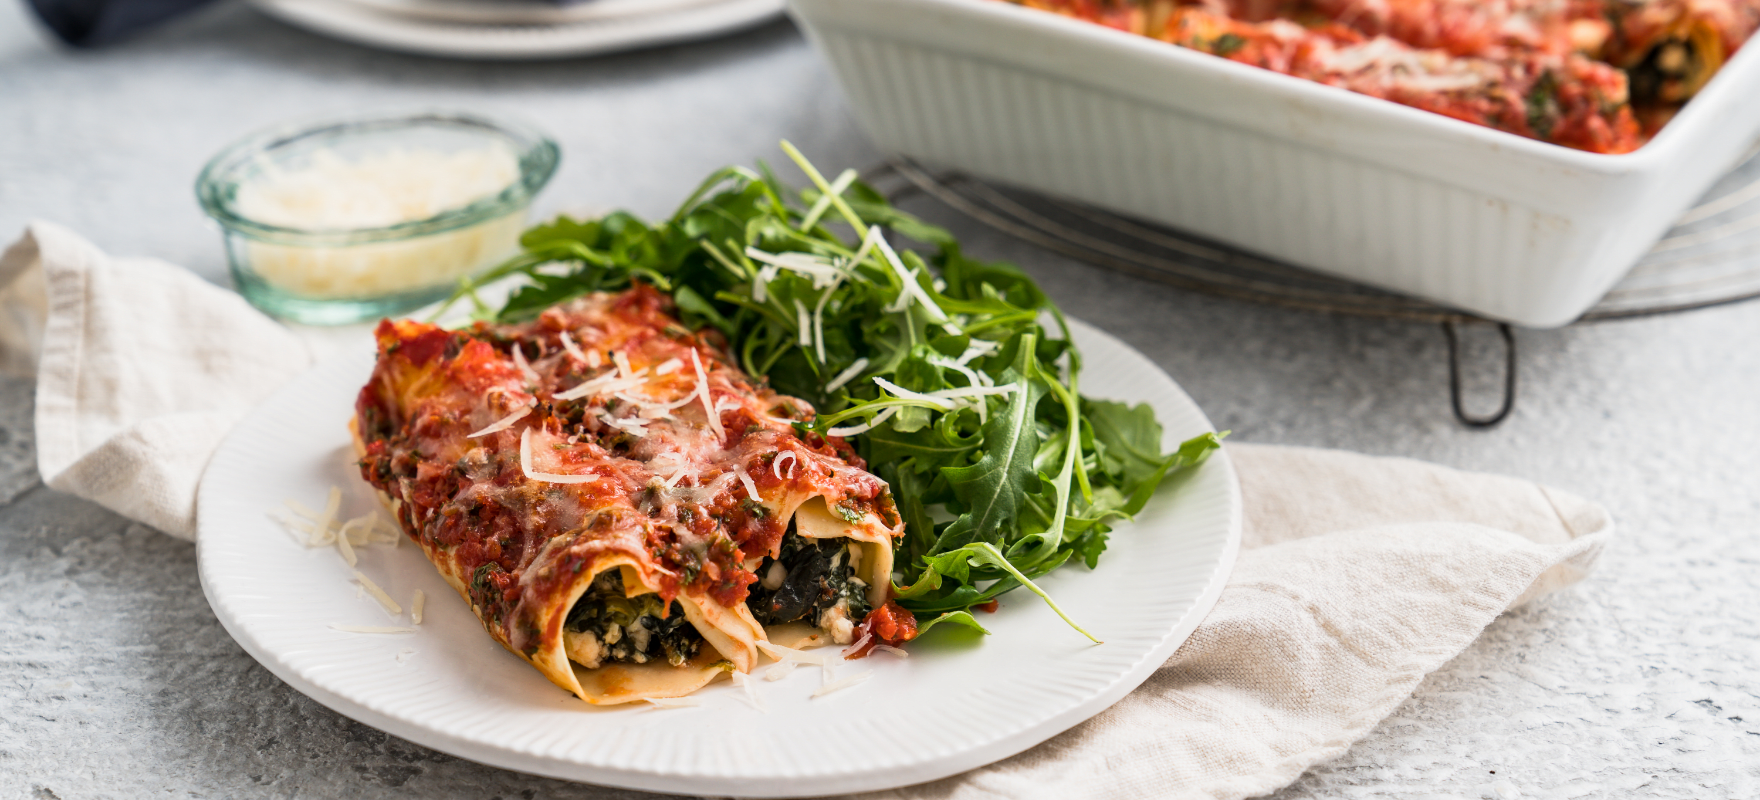 Spinach and feta cannelloni image 1